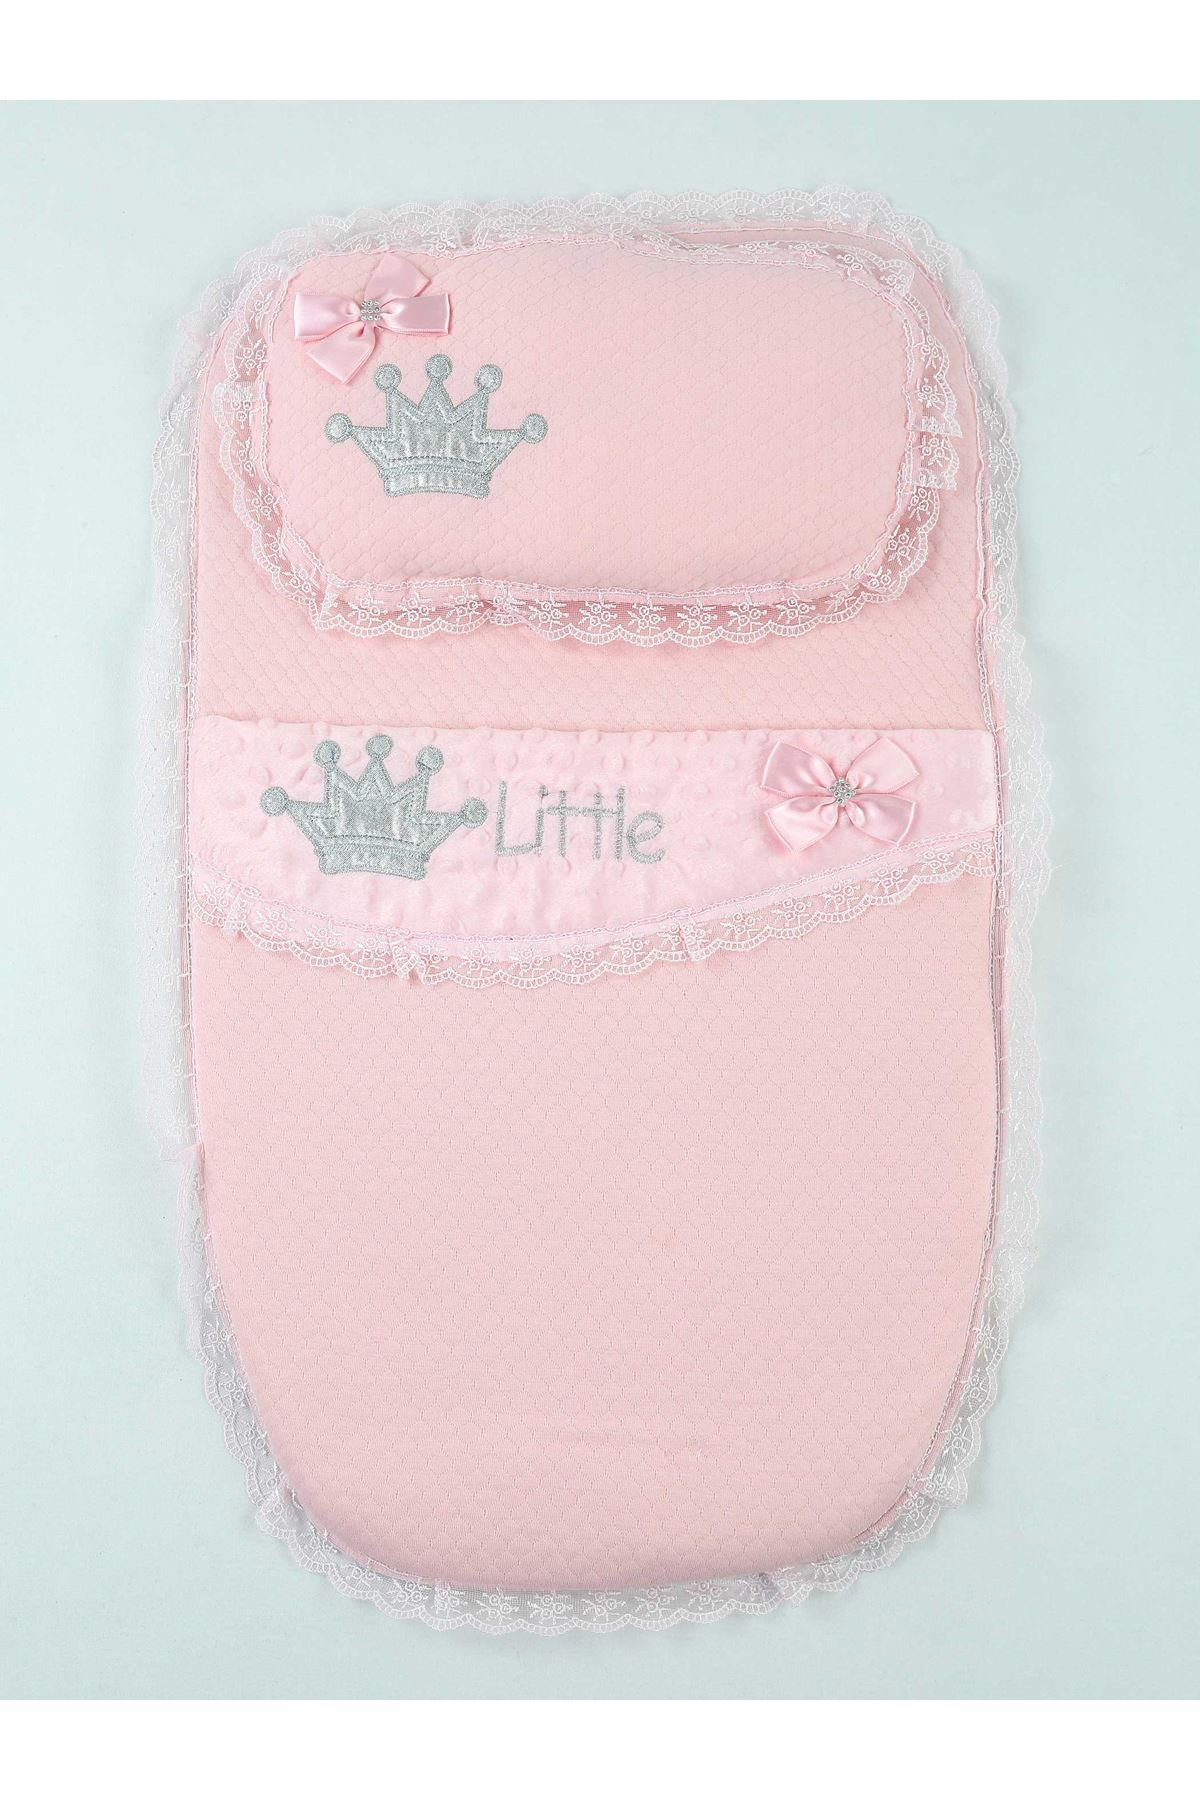 Pink baby girl swaddle queen model pillow bottom open infants stroller use cotton models